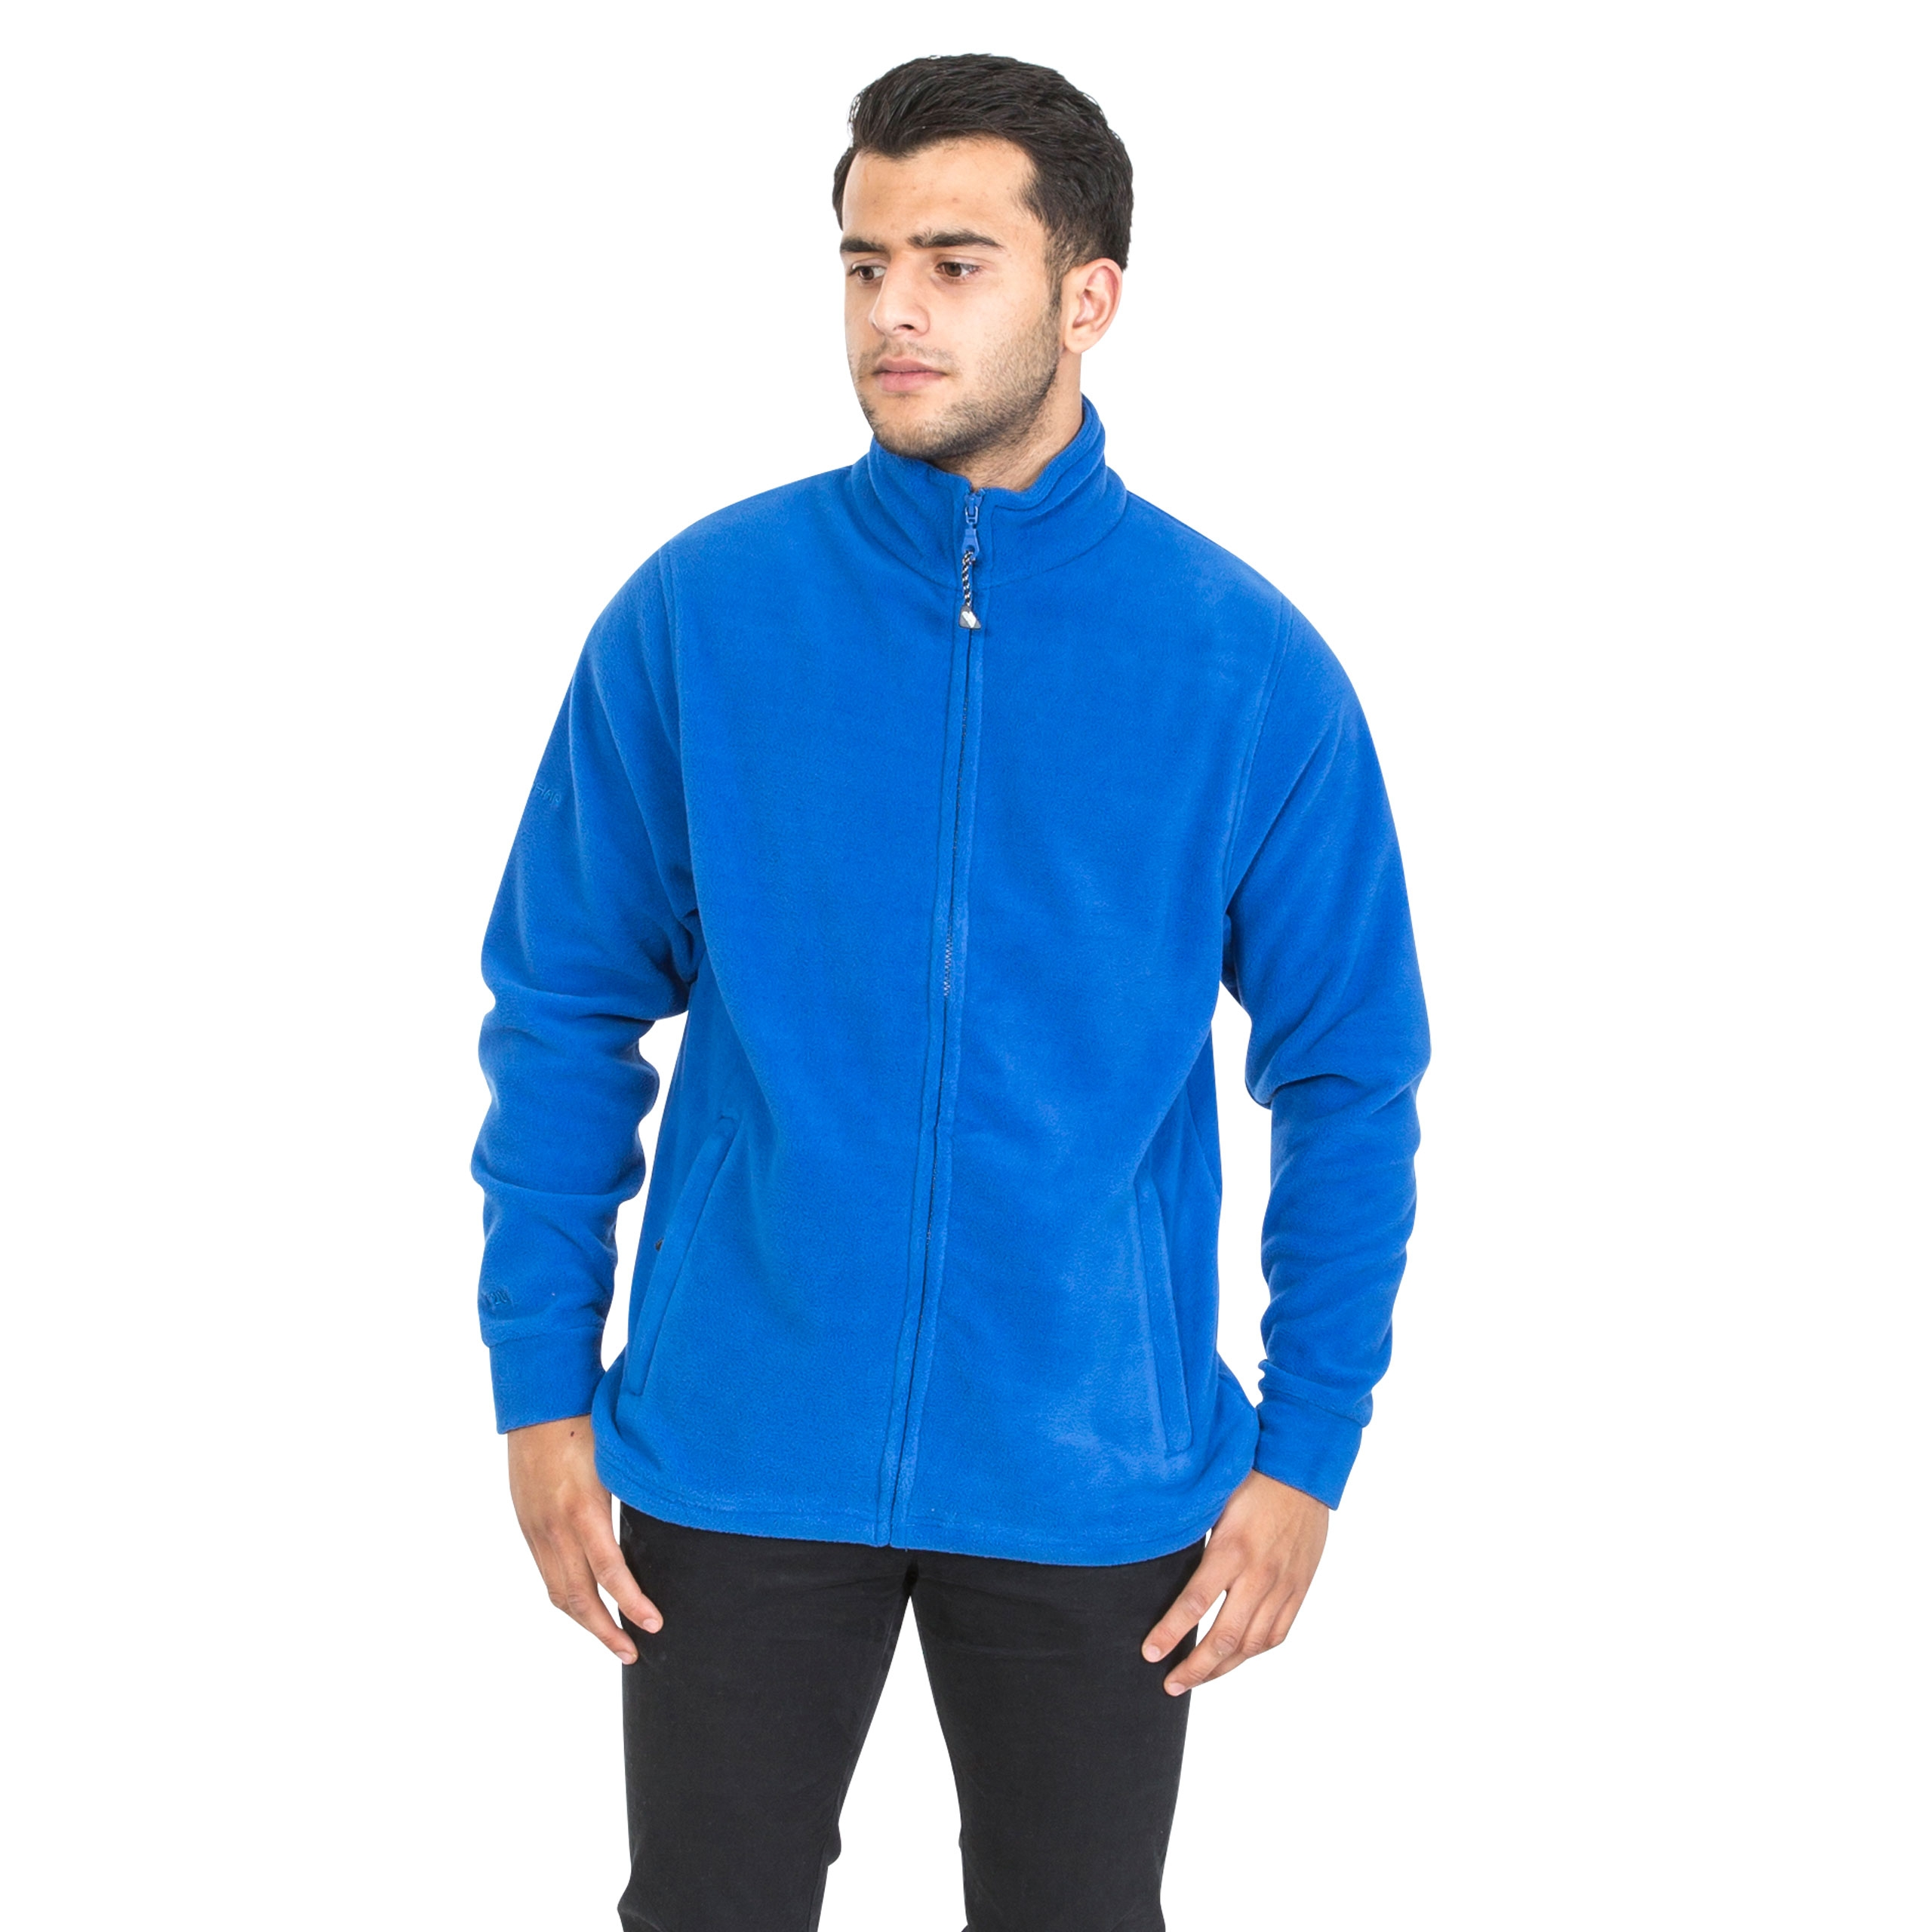 Trespass-Strength-Mens-Warm-Full-Zip-Fleece-Pullover-Walking-Hiking-Jumper thumbnail 19